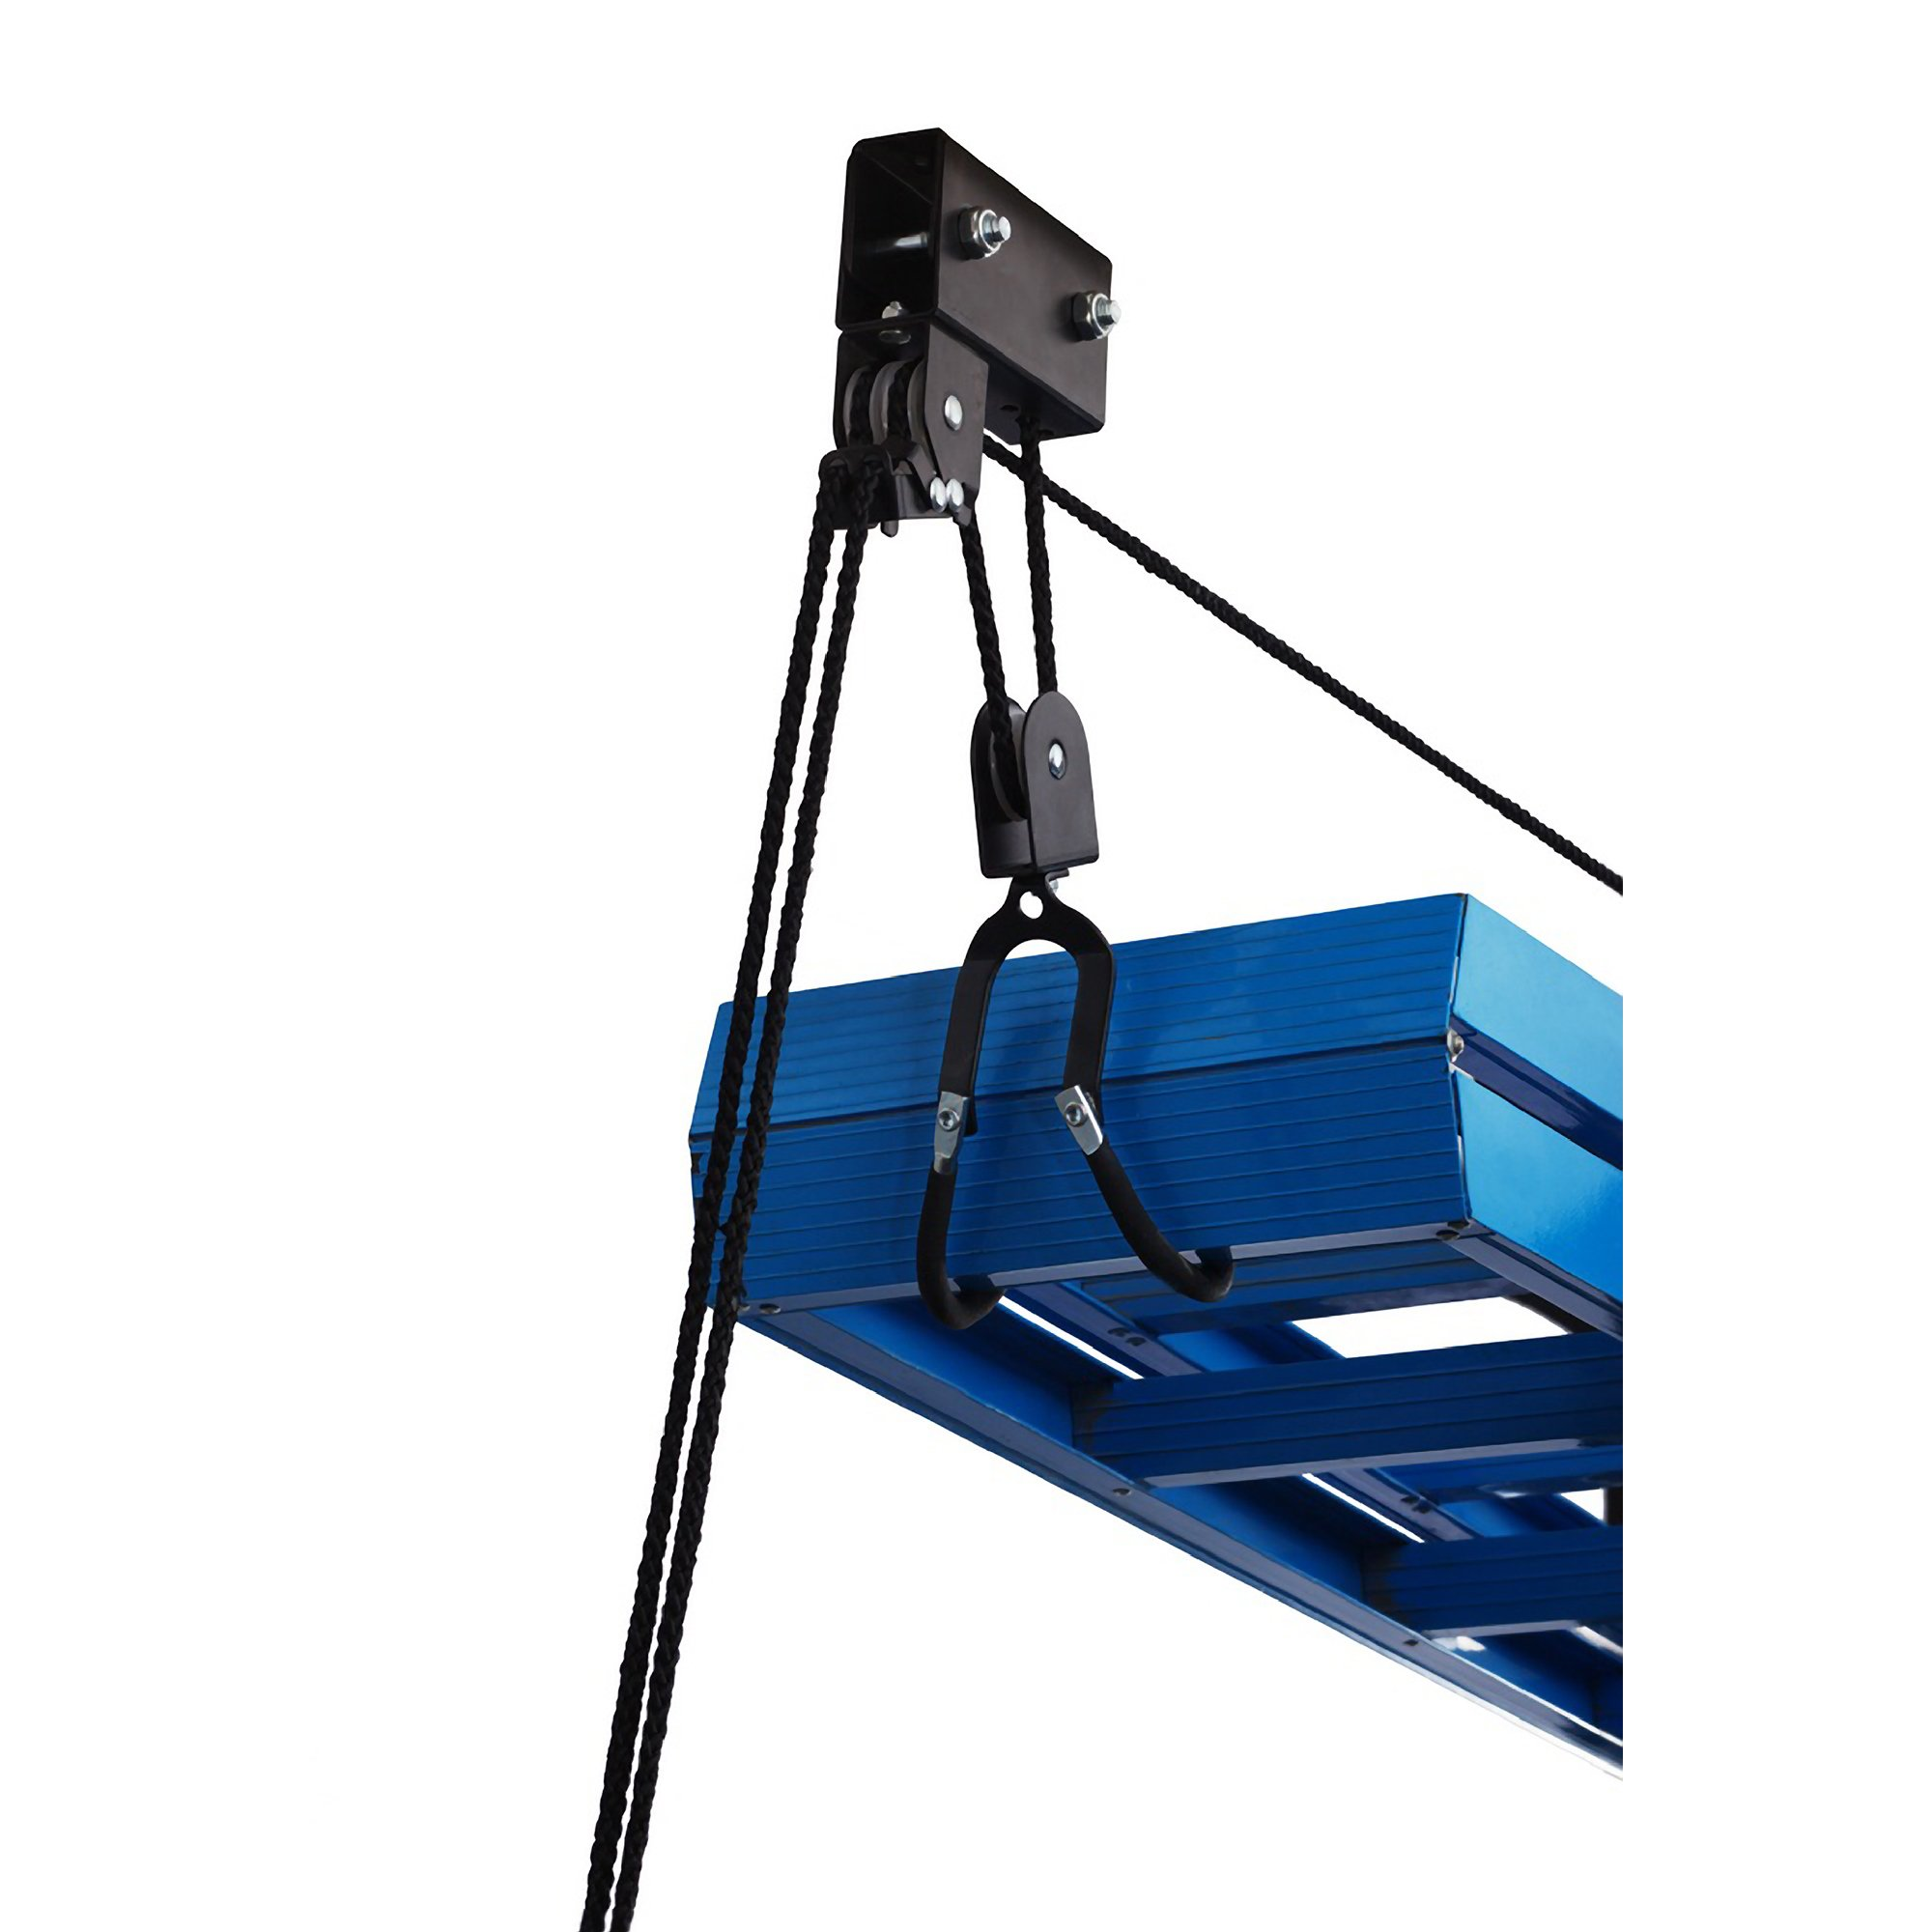 capacity lift hoist canoe storage product lb with pack system rad ladder premium pulley works kayak even sportz quality garage as